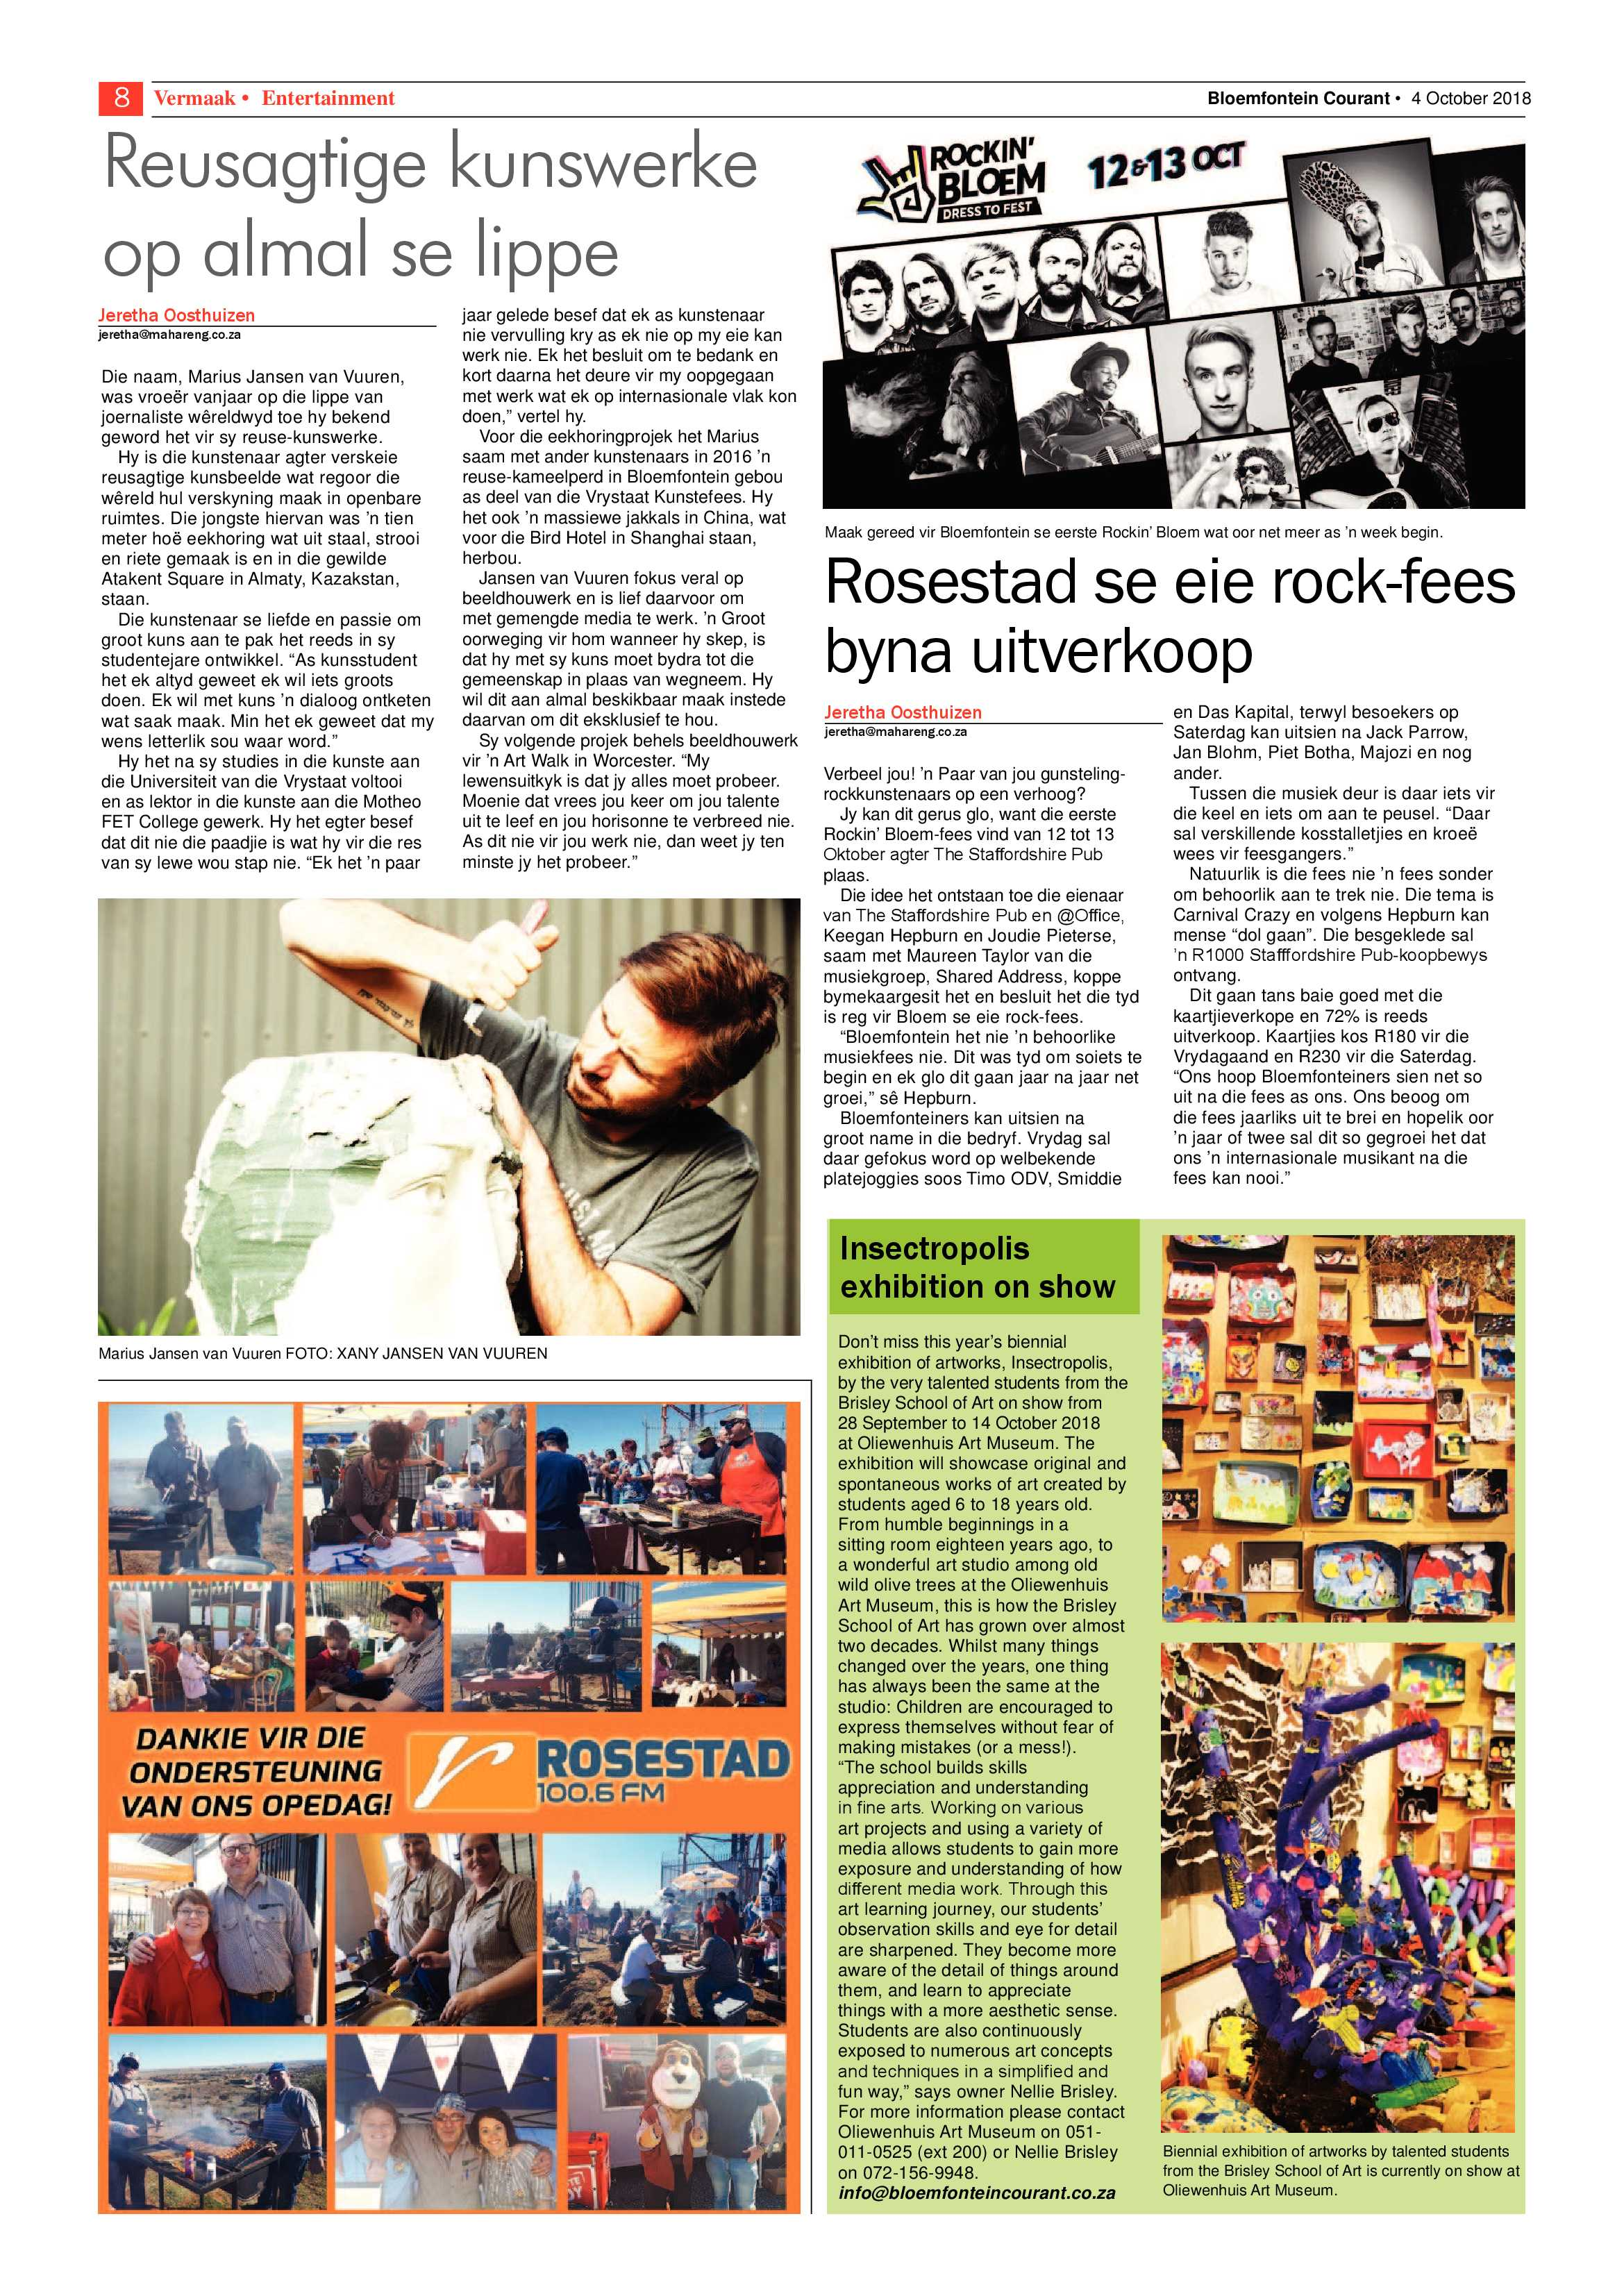 courant-04-october-2018-epapers-page-8